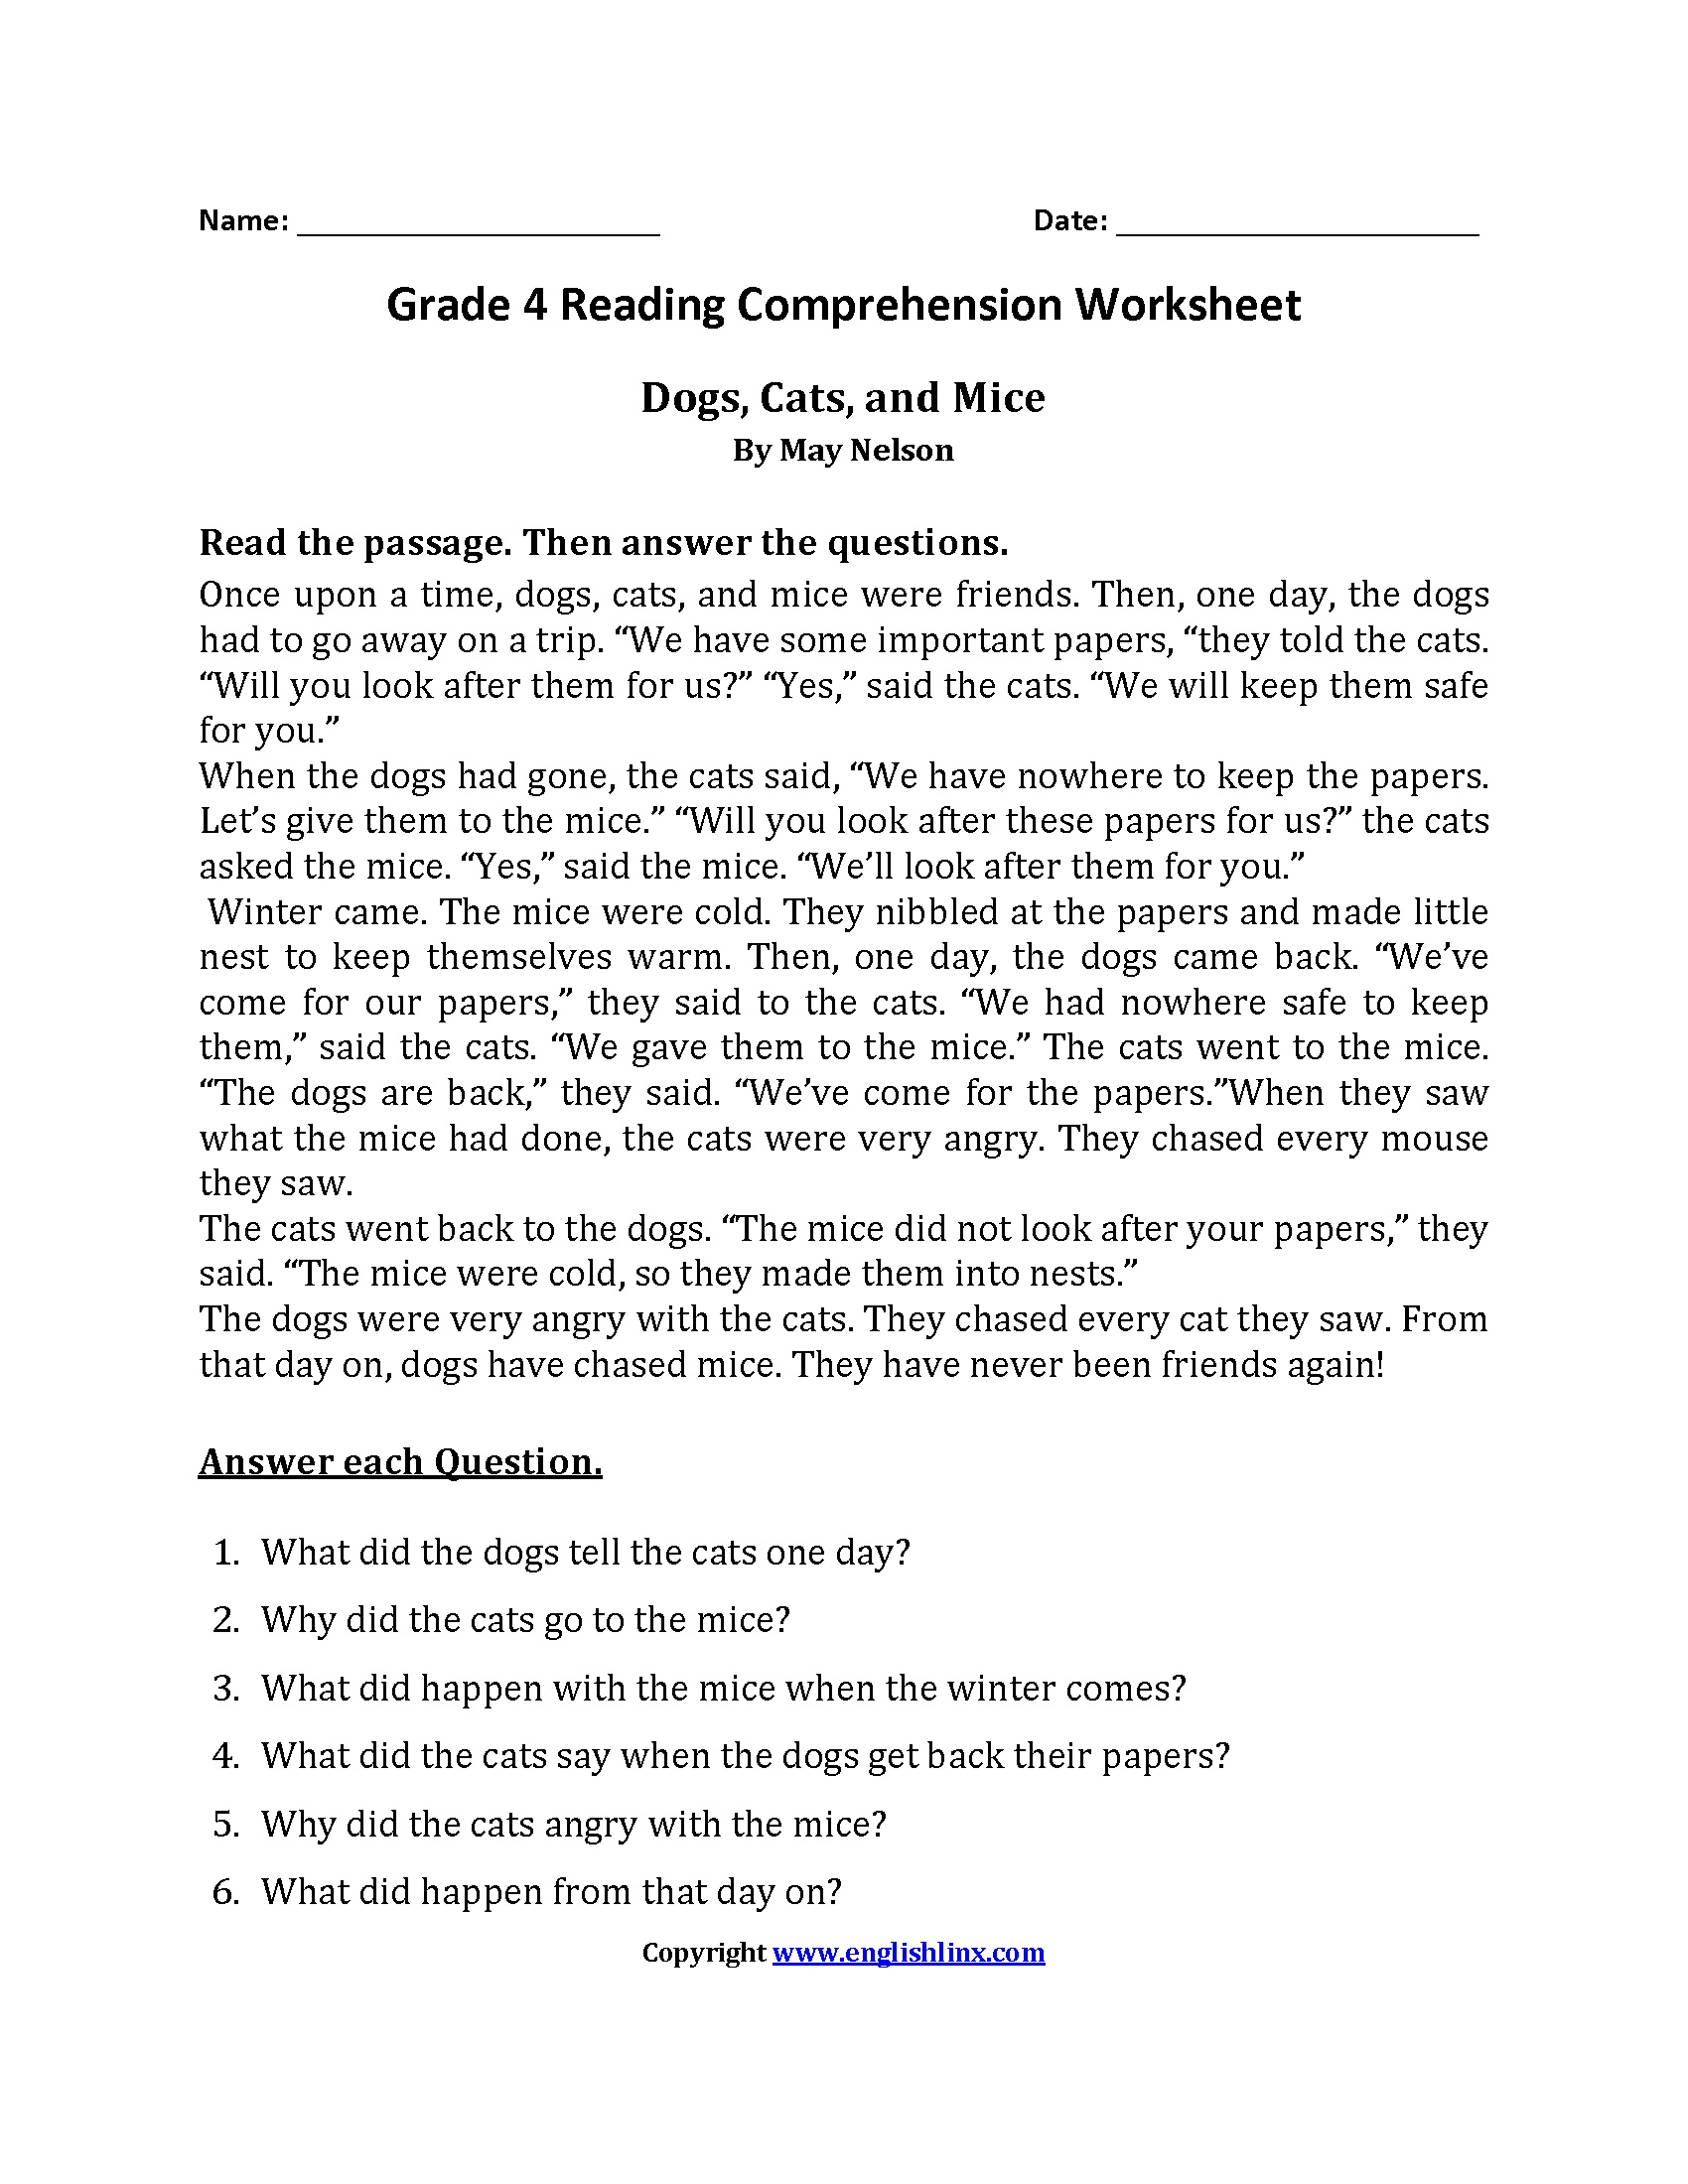 Worksheet : Free Printable Games Simple Math Exercises 6Th Grade - 9Th Grade Science Worksheets Free Printable